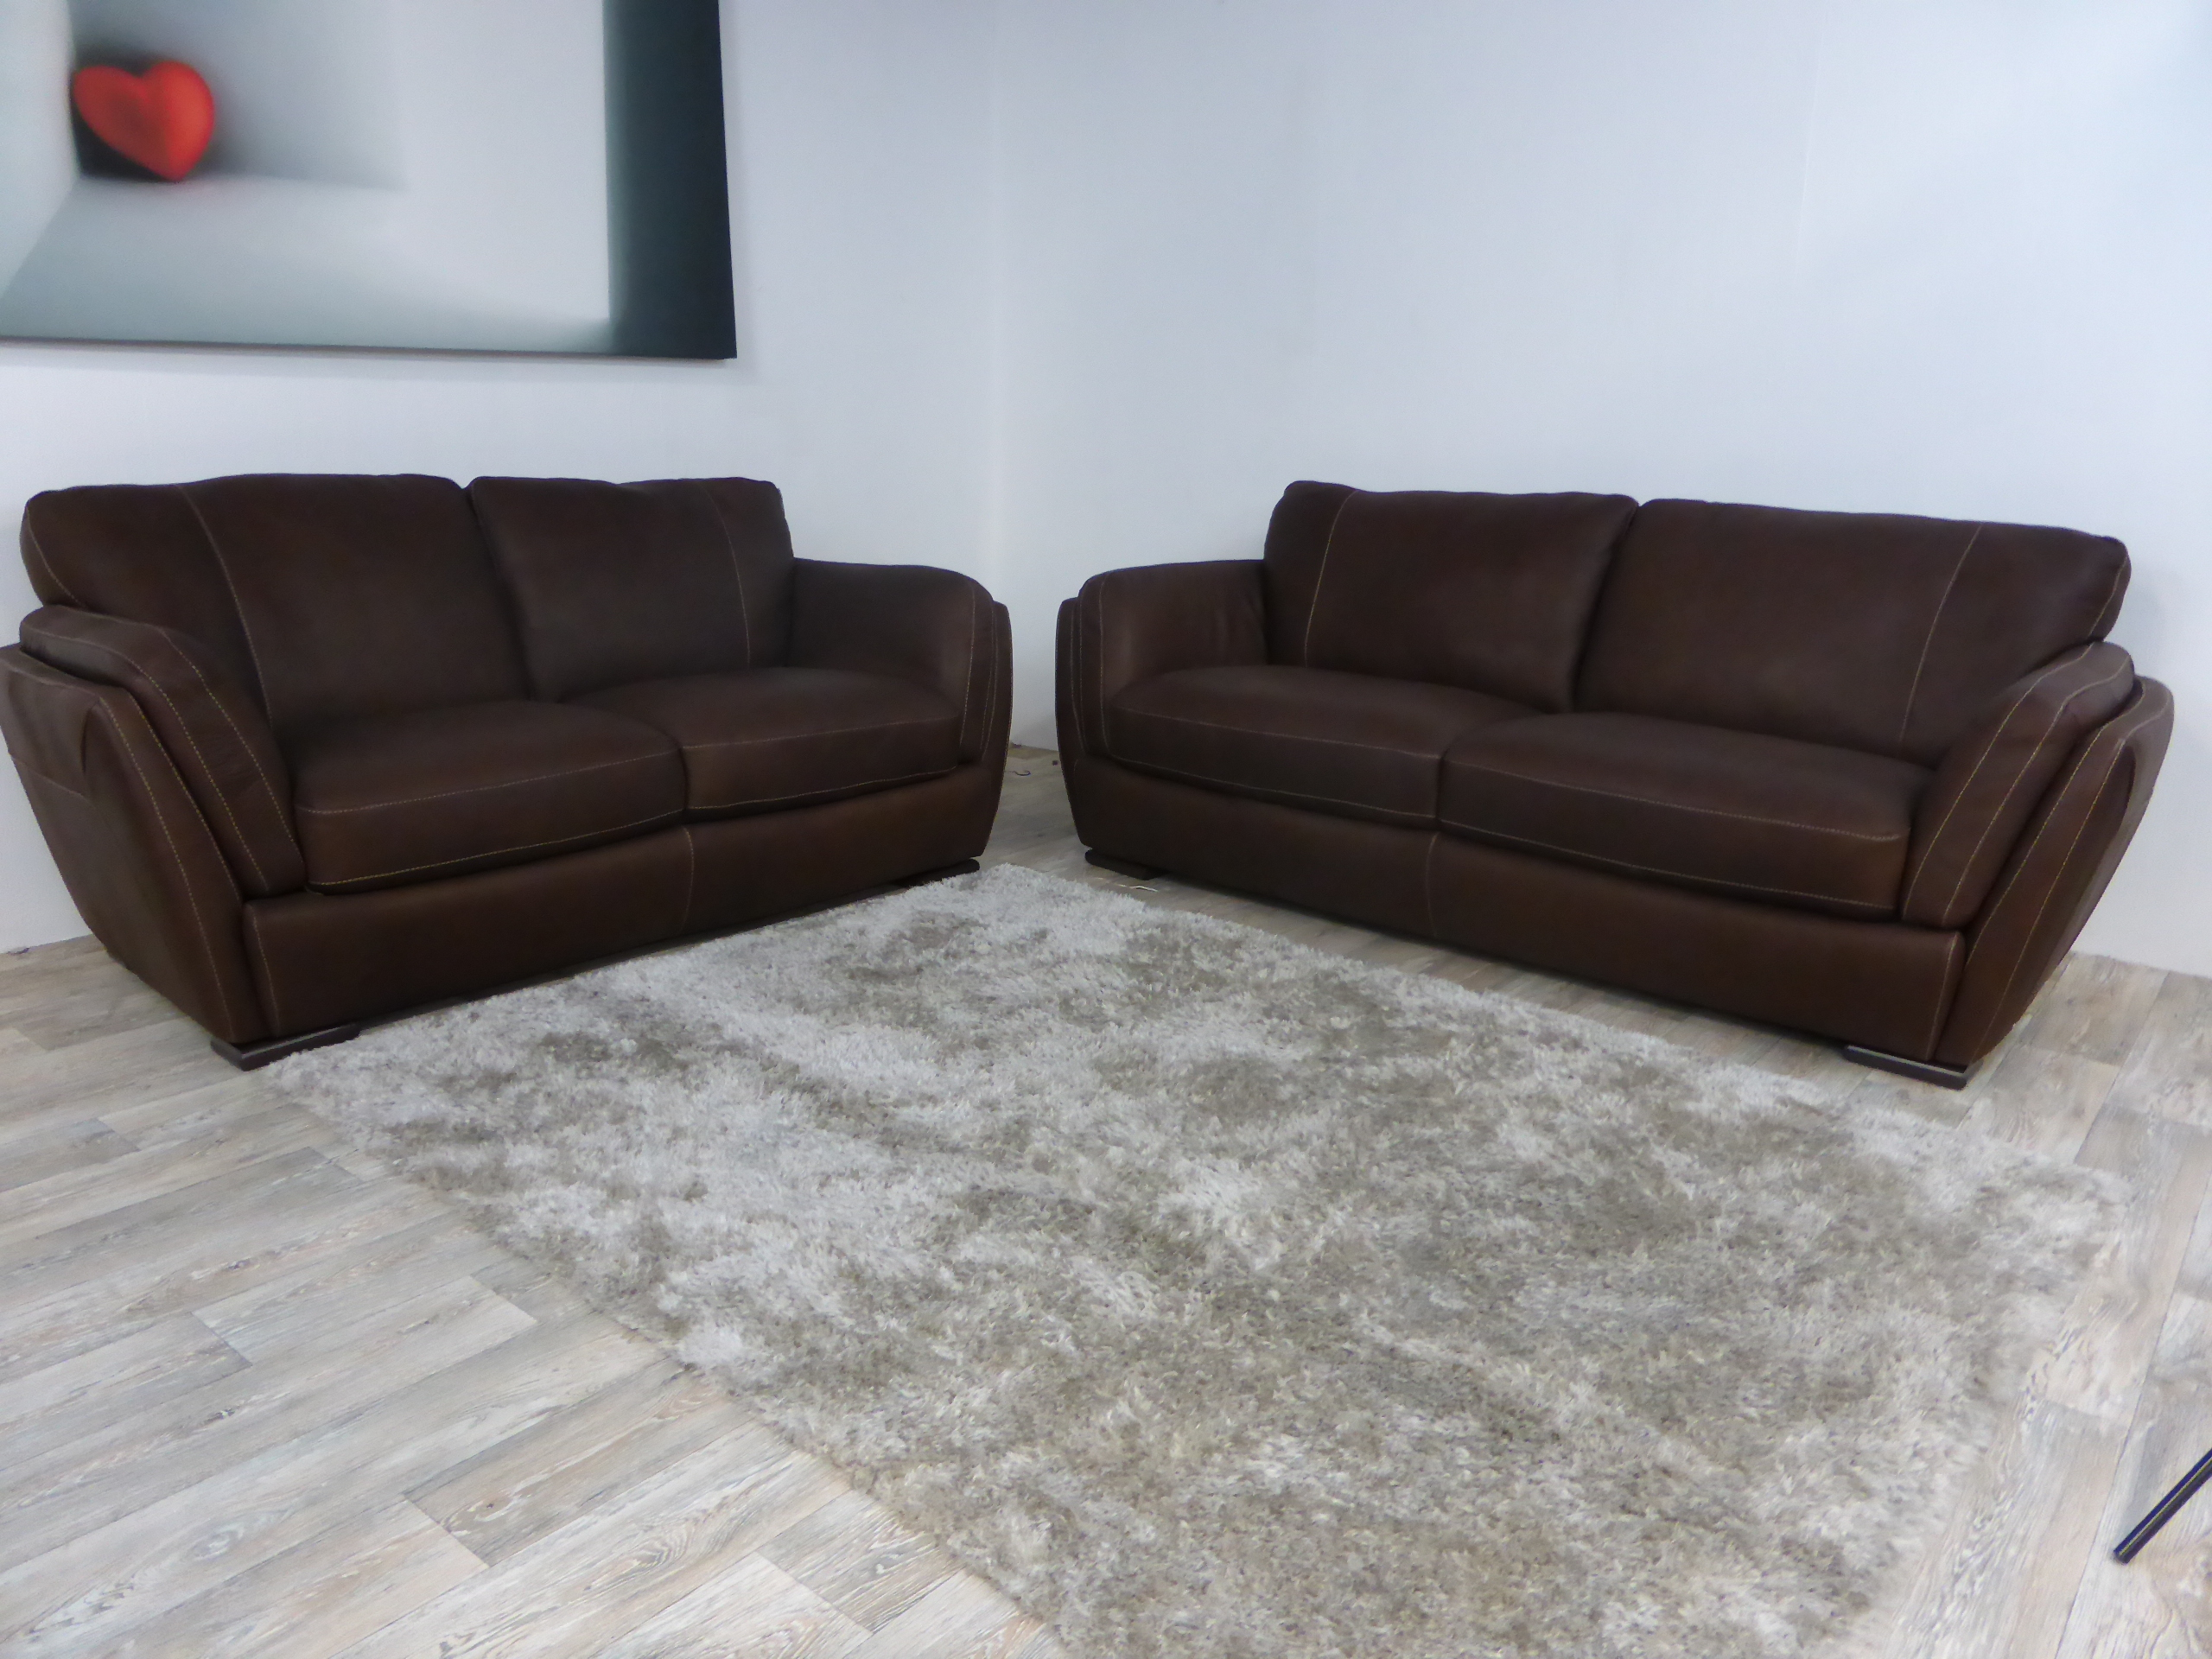 natuzzi arona 2 seater leather sofa bed and loveseat clearance editions havanna 3 sofas